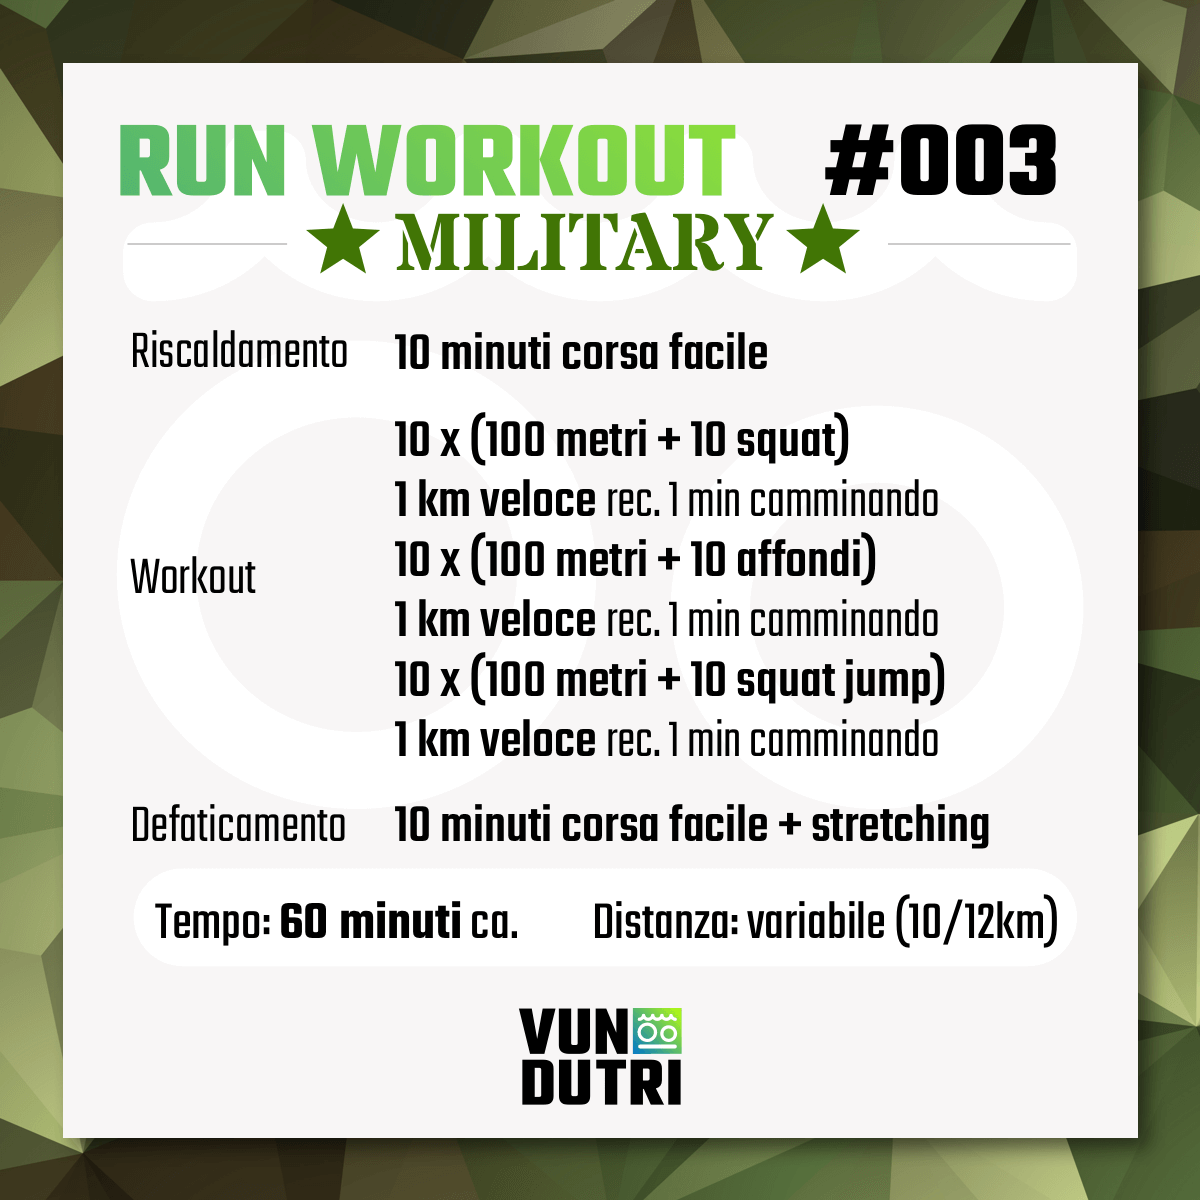 Run Workout 003 - Military